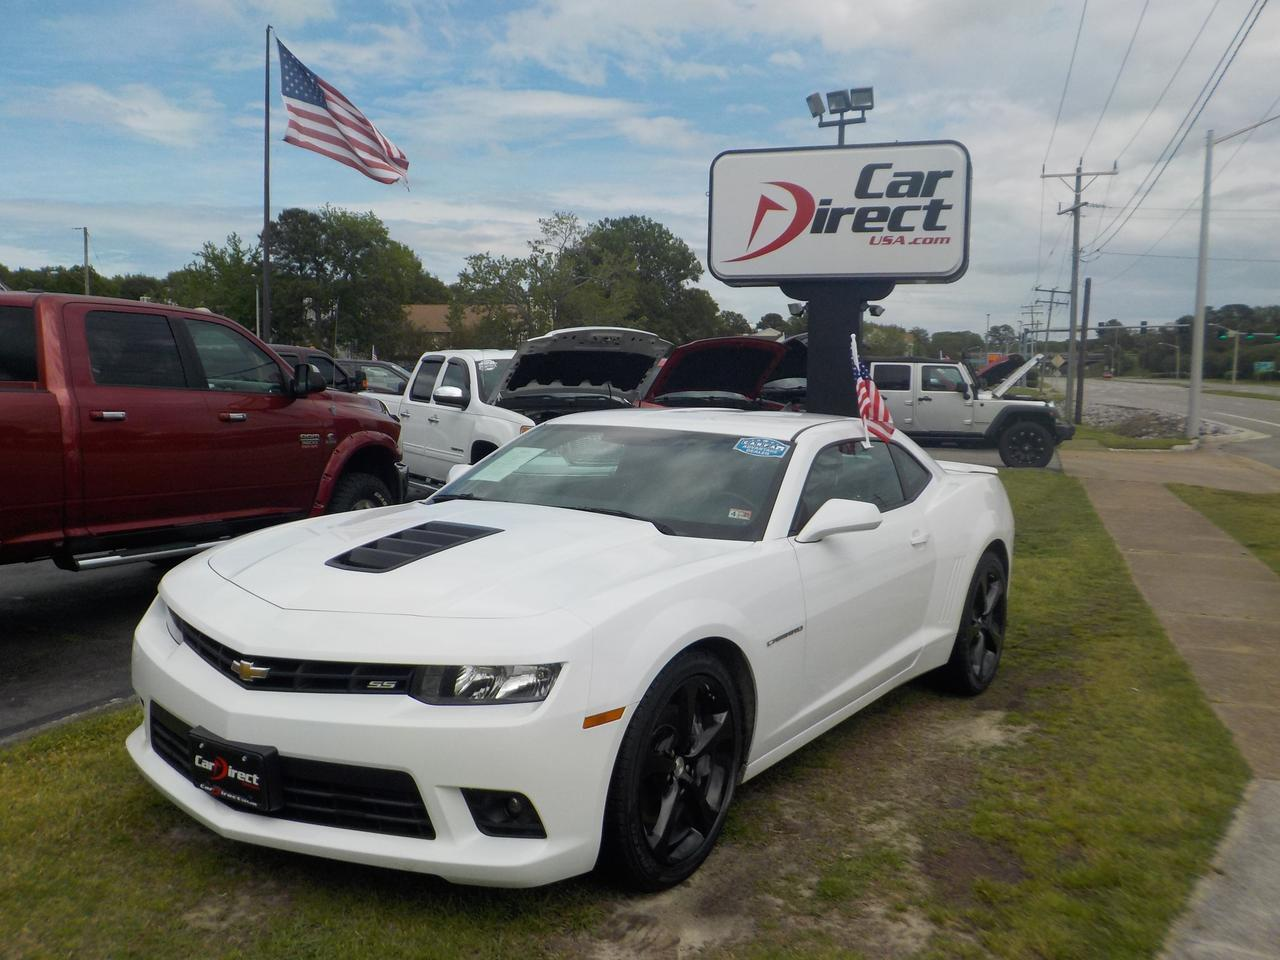 2015 CHEVROLET CAMARO COUPE 2SS, 6-SPEED MANUAL, WARRANTY, BACKUP CAMERA, ONSTAR, BLUETOOTH, PARKING SENSORS, LEATHER!!! Virginia Beach VA